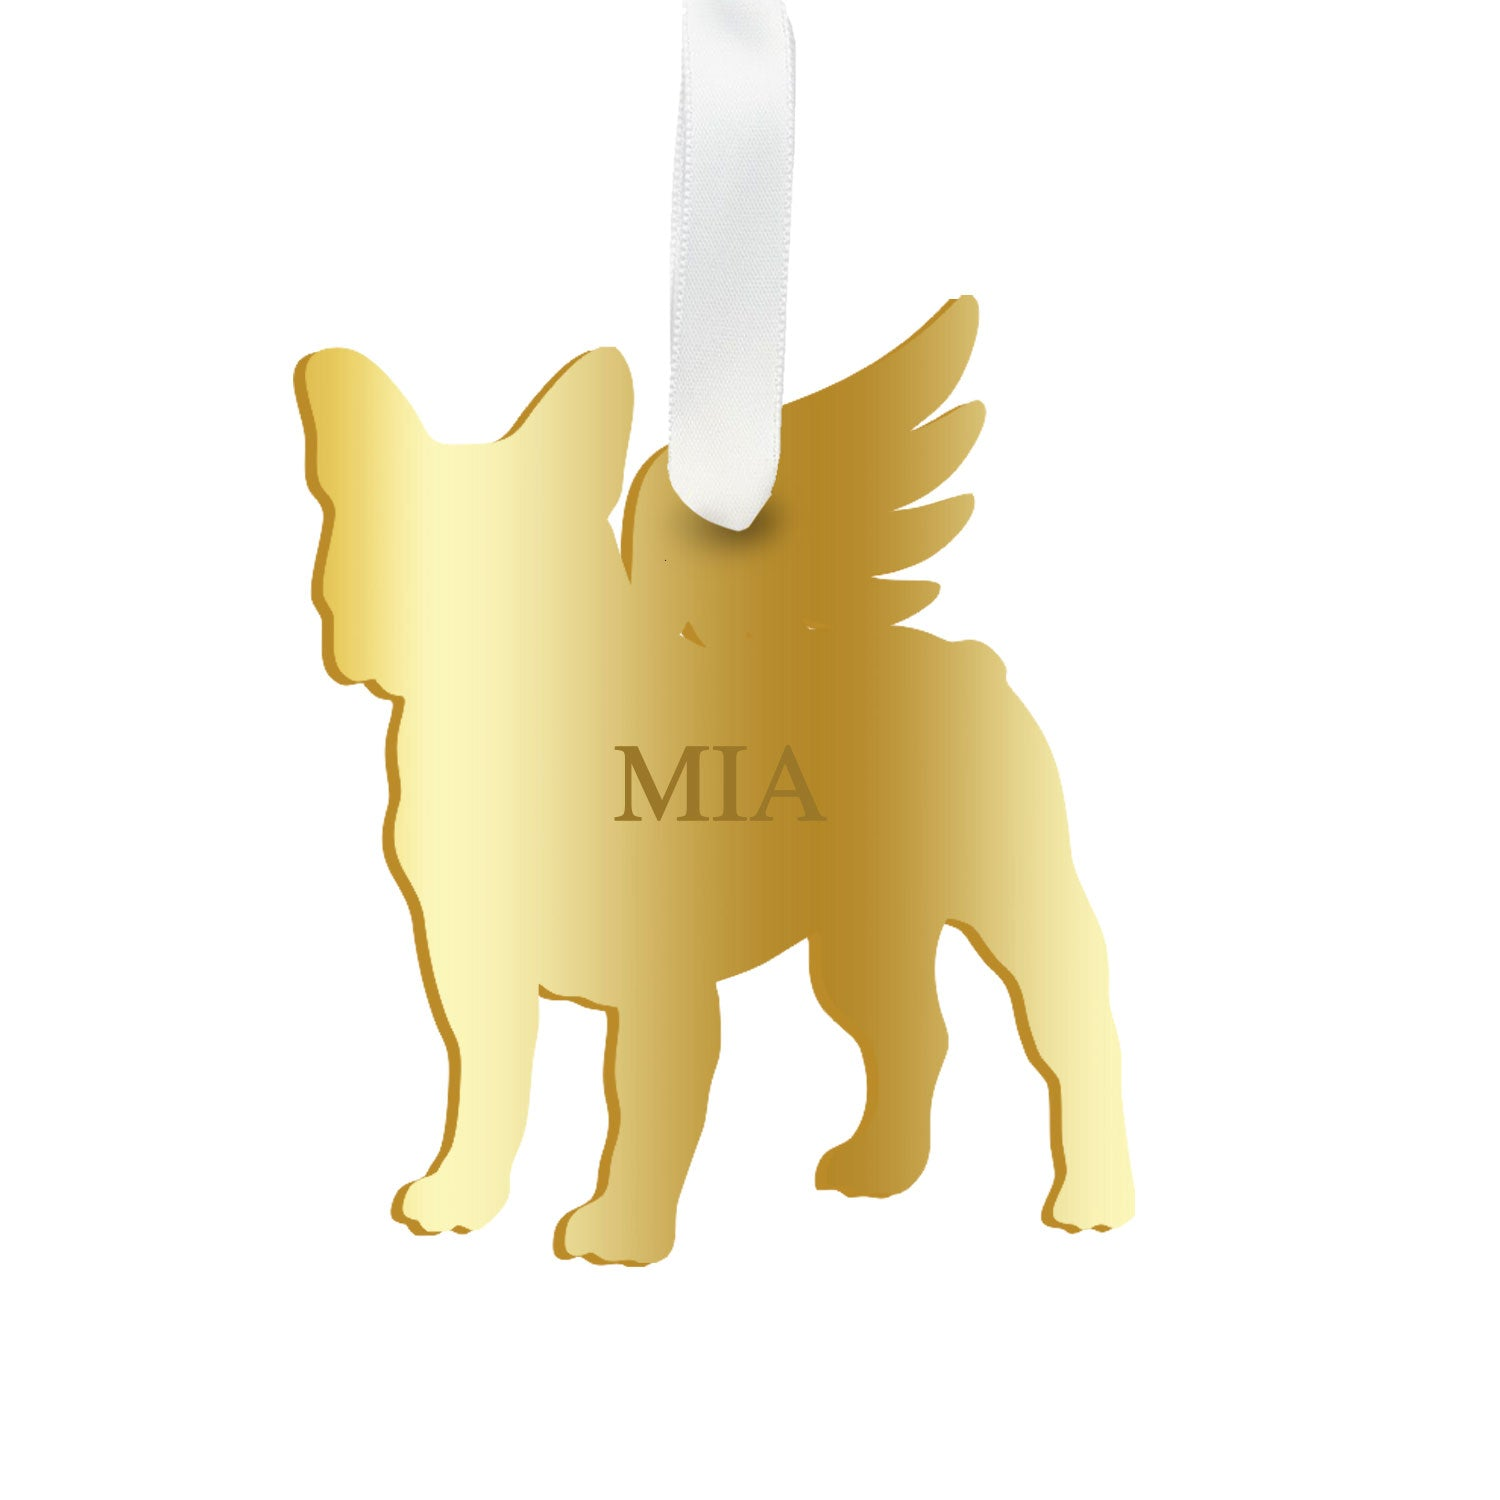 Moon and Lola - Personalized Angel Boston Terrier Ornament with wings in mirrored gold